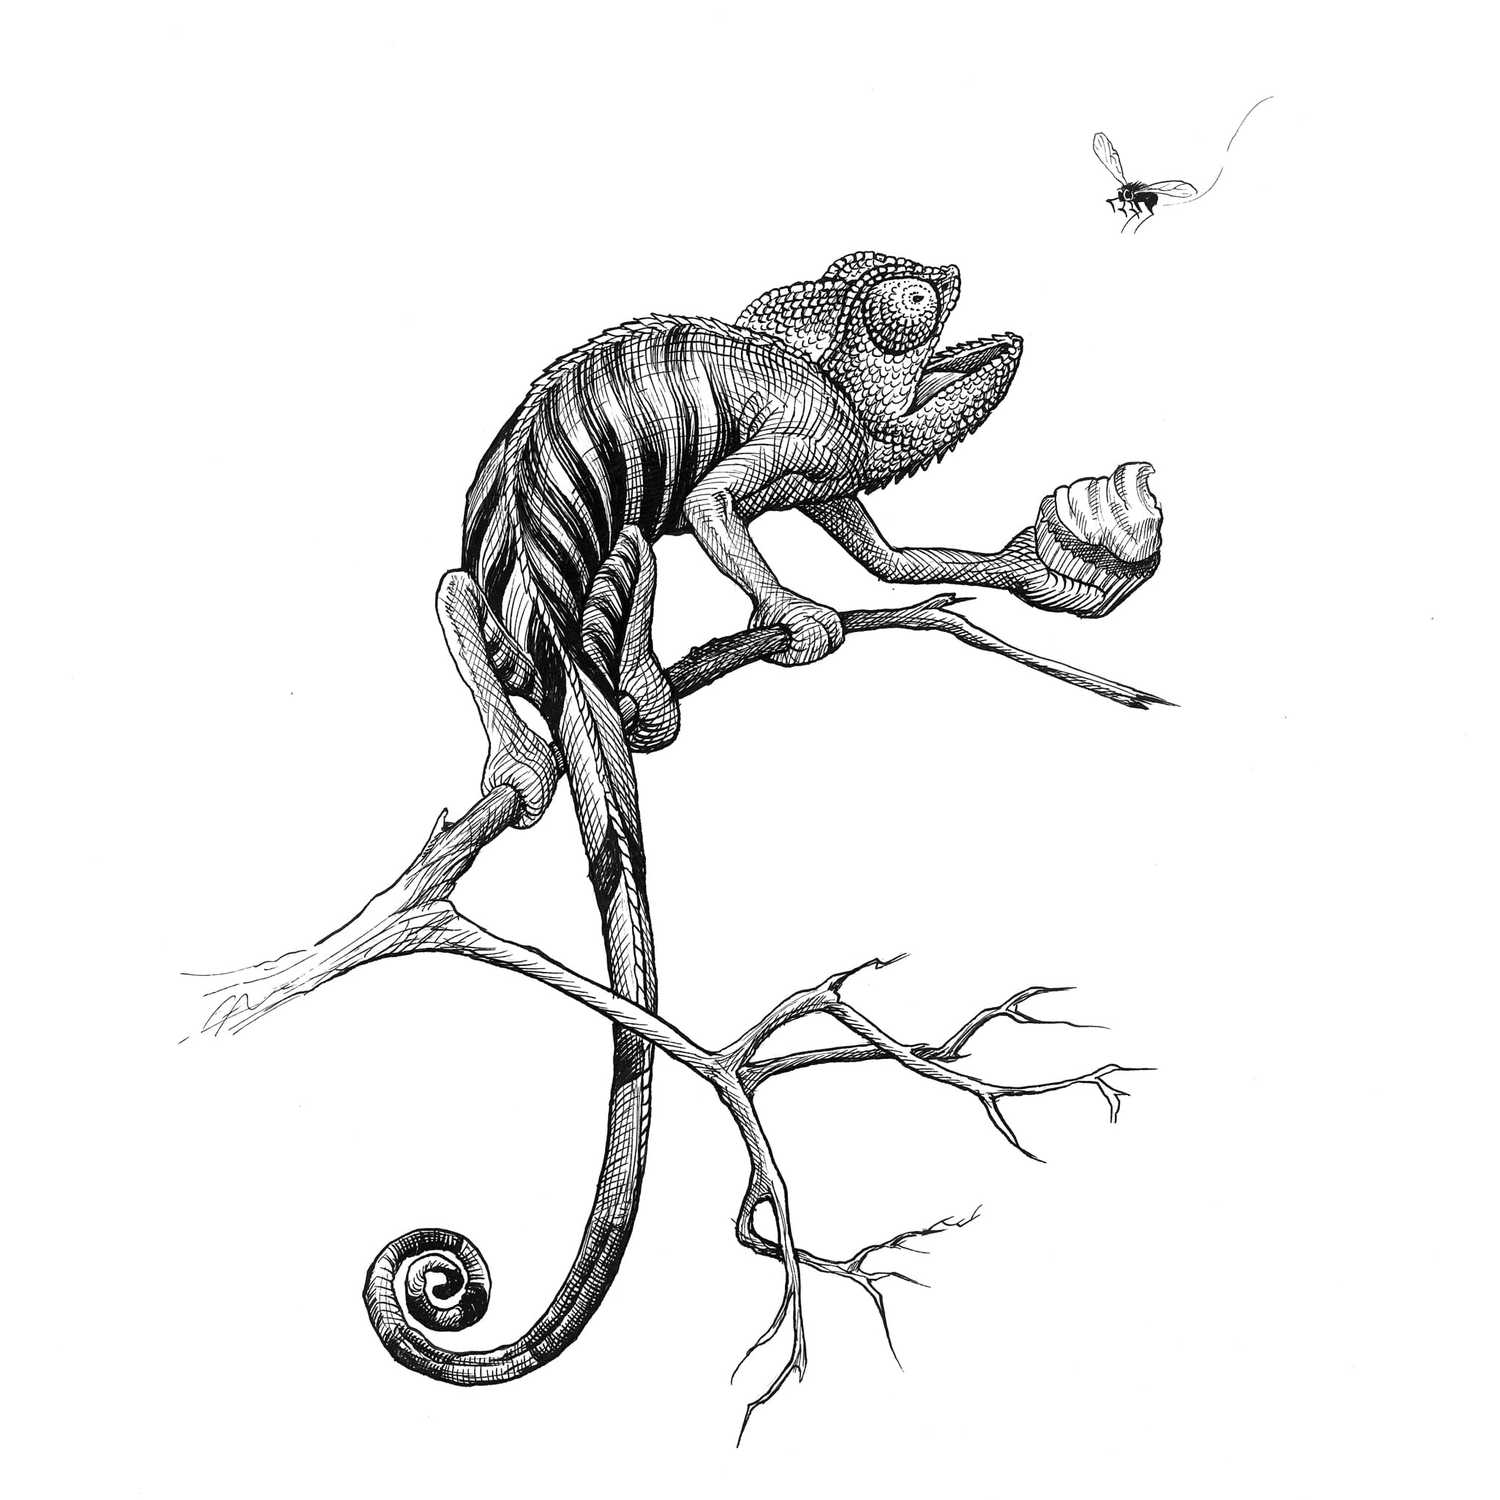 Cheeky Chameleon Clutching a Cherry Cupcake Intricate Ink Print-0